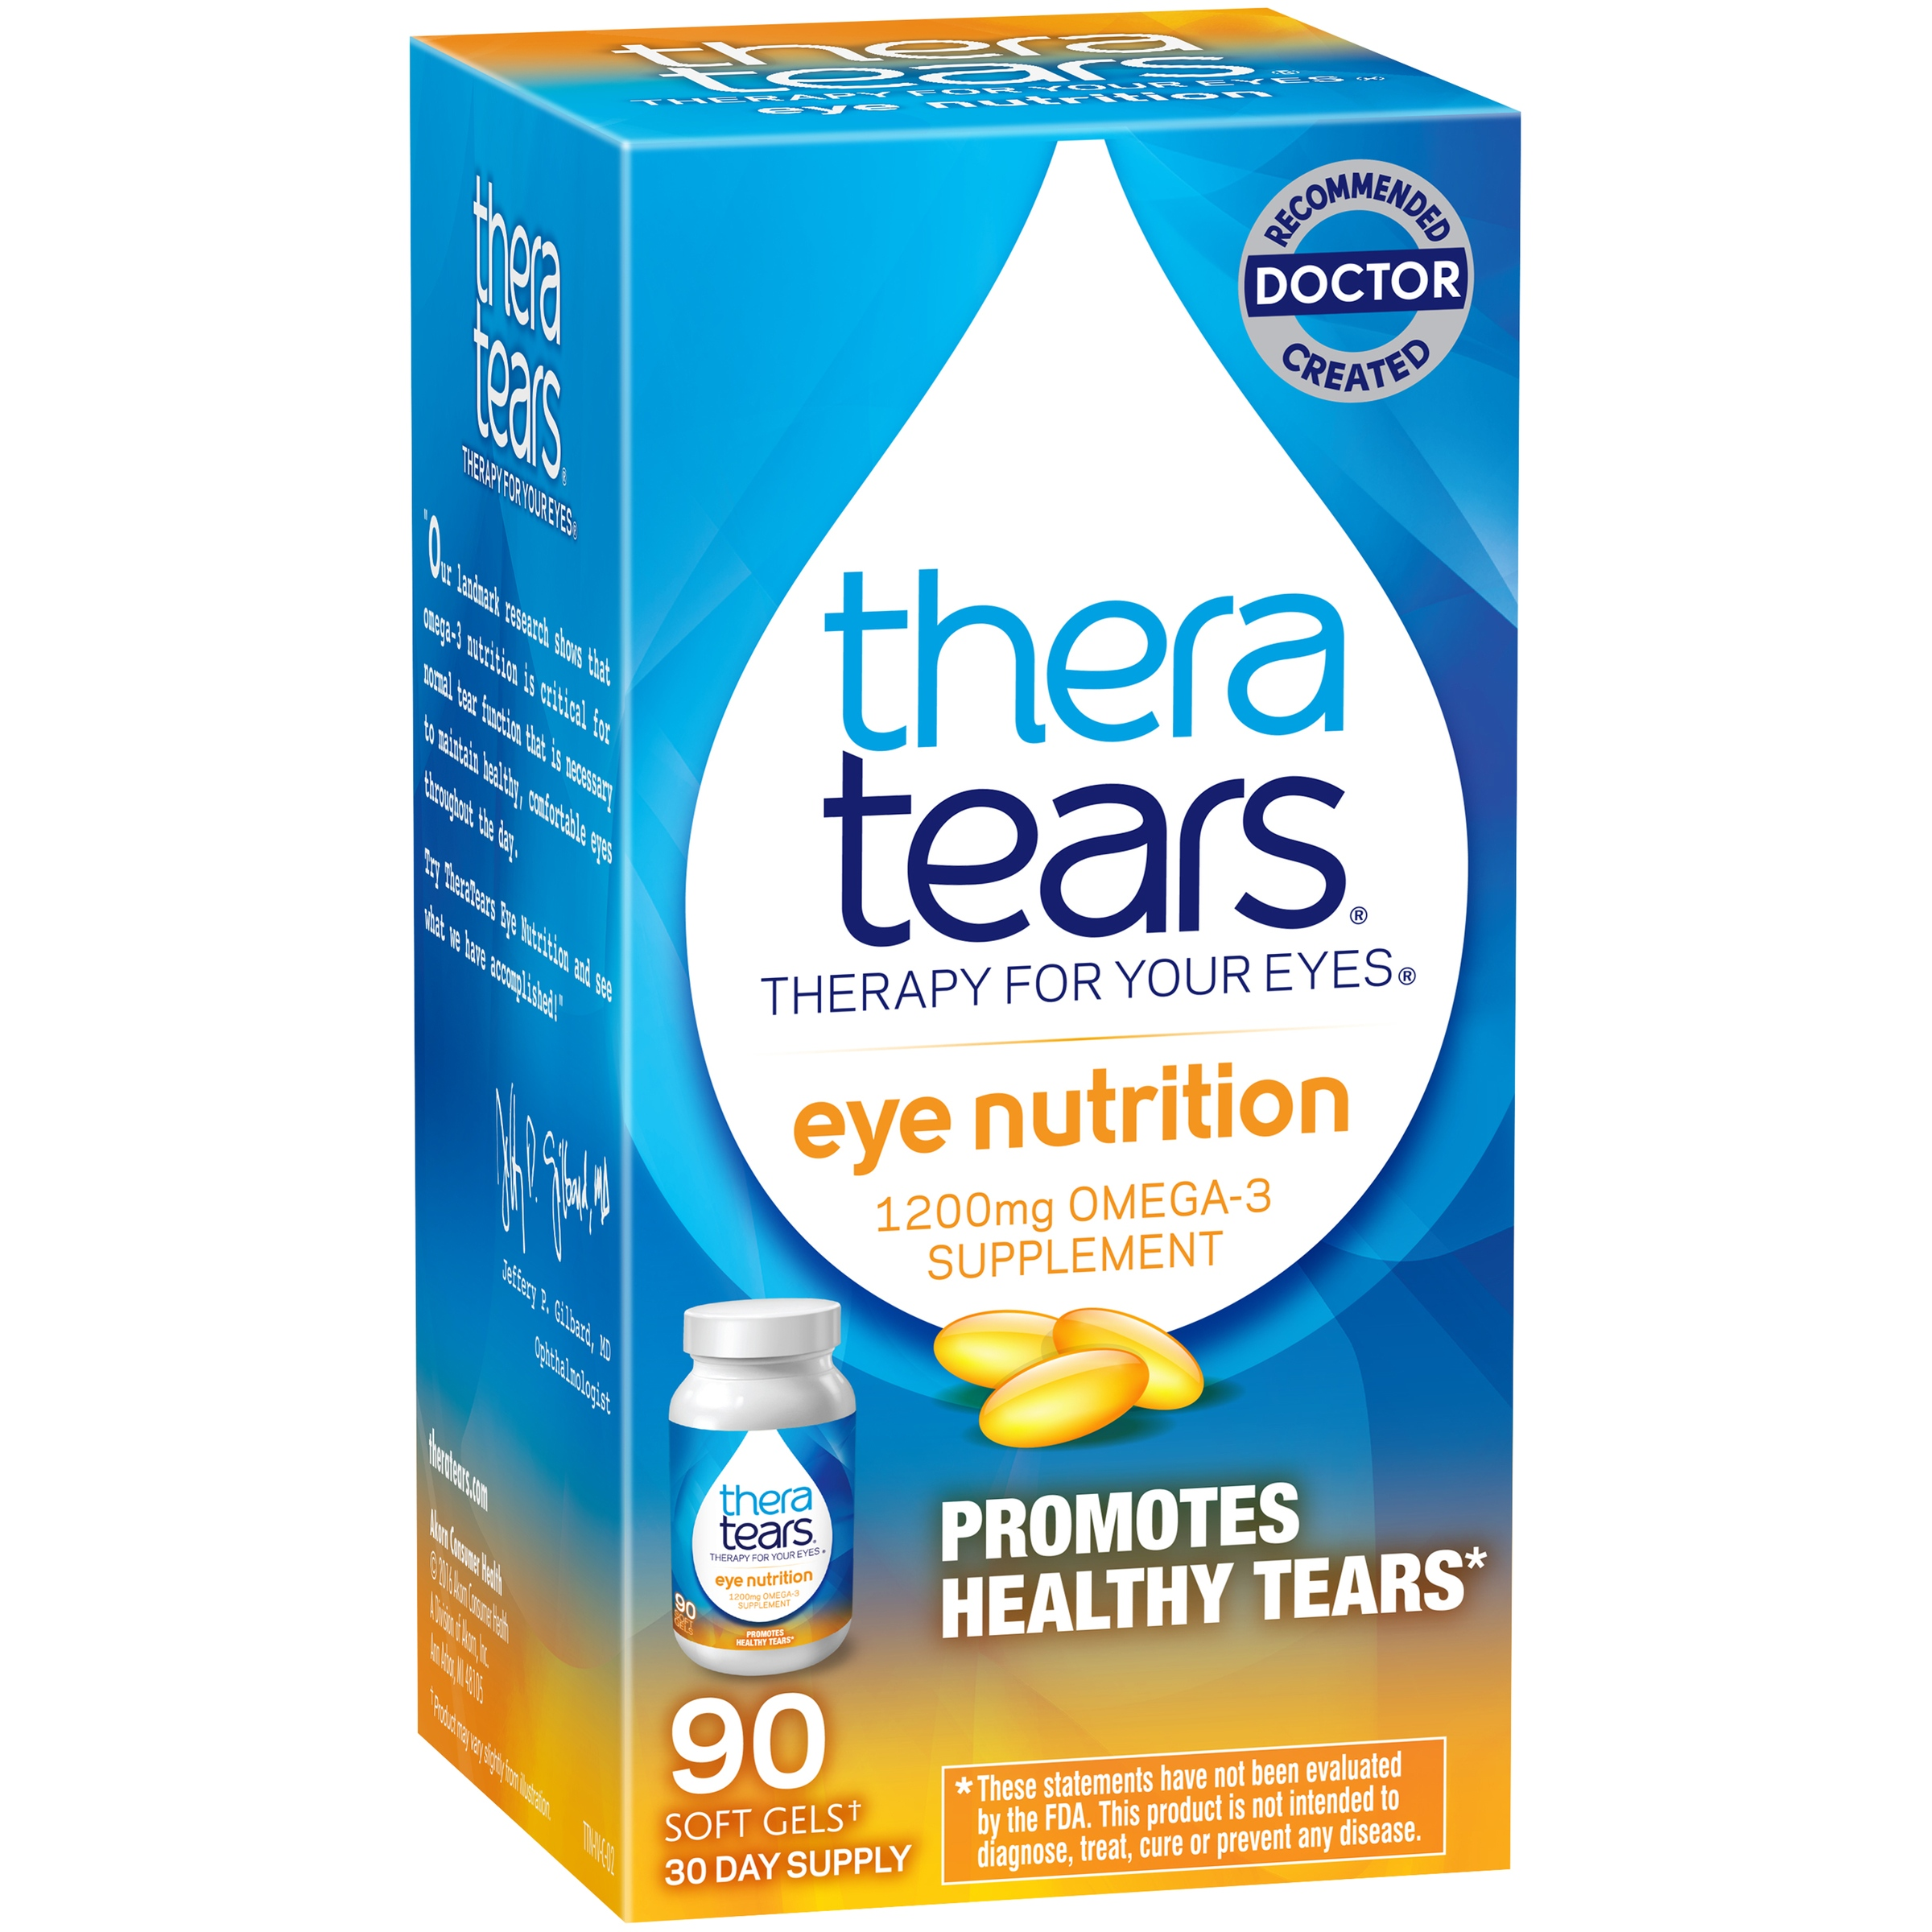 TheraTears Eye Nutrition Omega-3 Softgels, 1200 Mg, 90 Ct